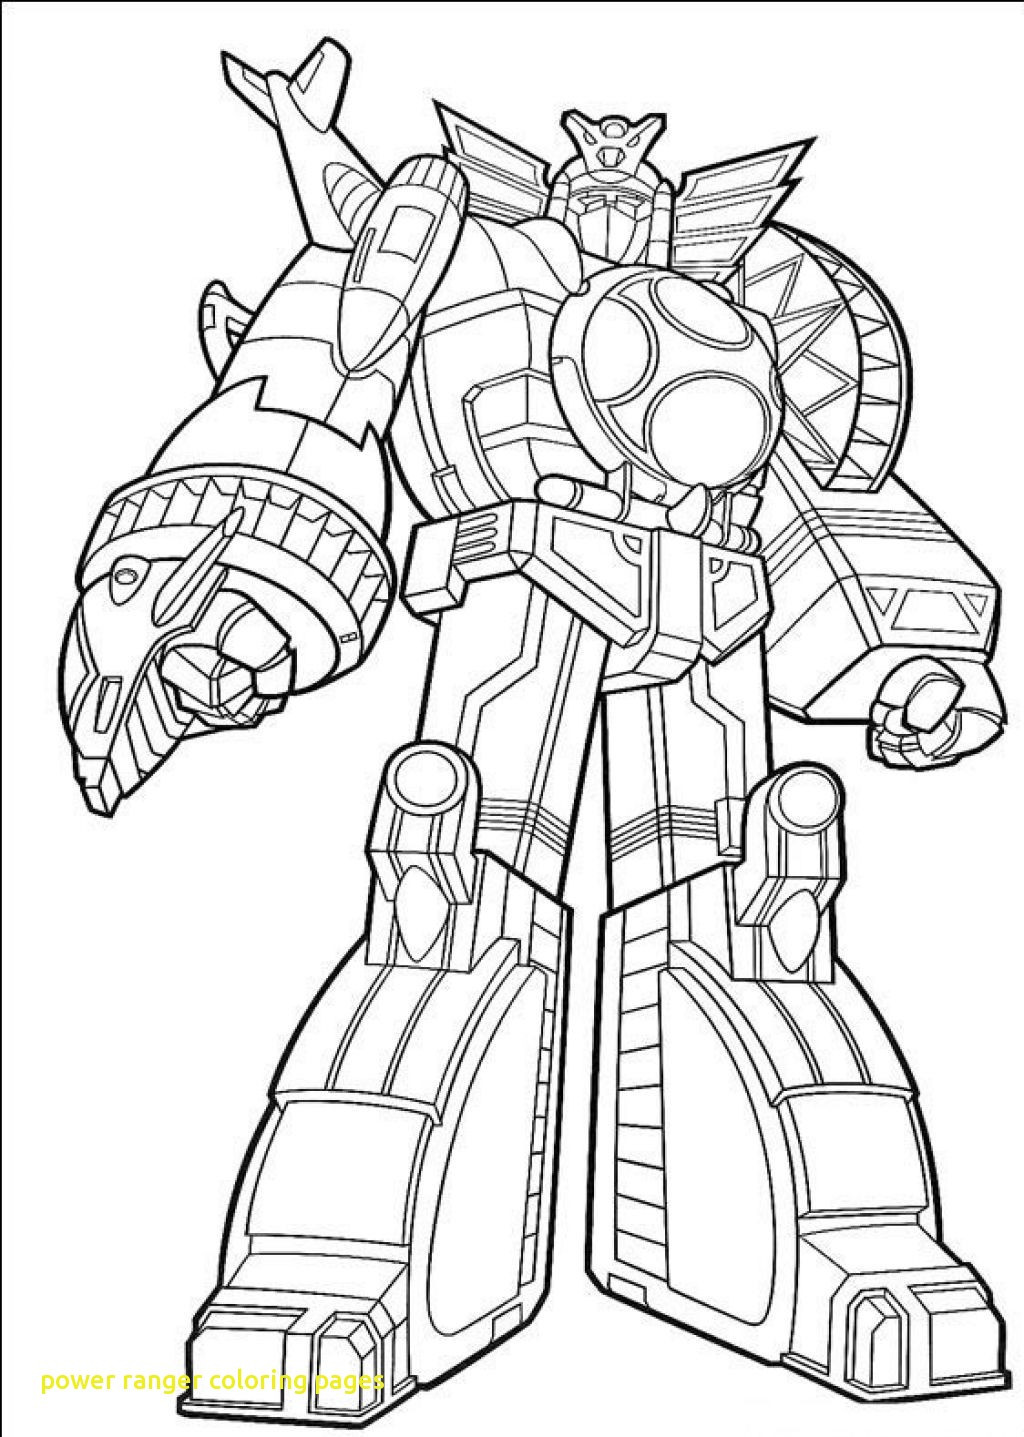 mighty morphin power rangers coloring pages mighty morphin power rangers coloring pages at getdrawings coloring power rangers mighty pages morphin